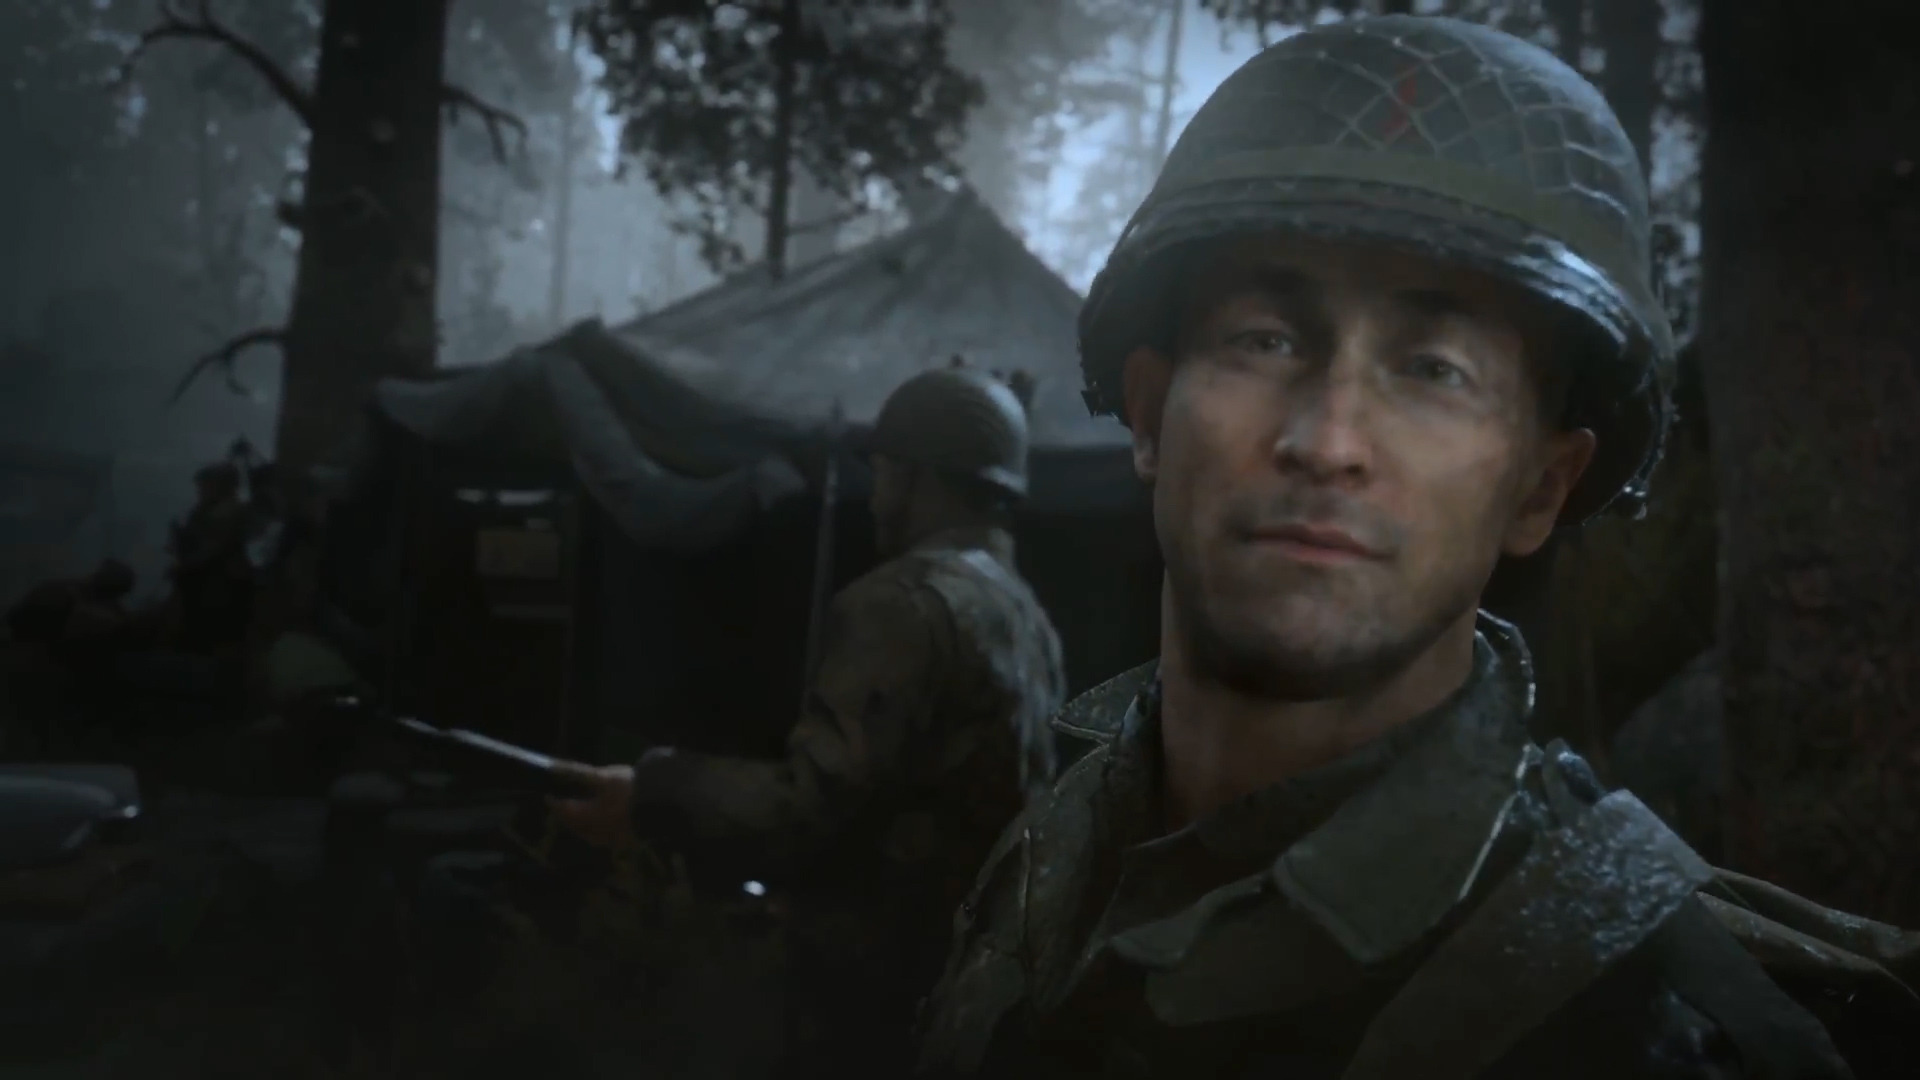 Call Of Duty Ww2 Wallpaper 4k: Call Of Duty WW2 Wallpapers High Quality